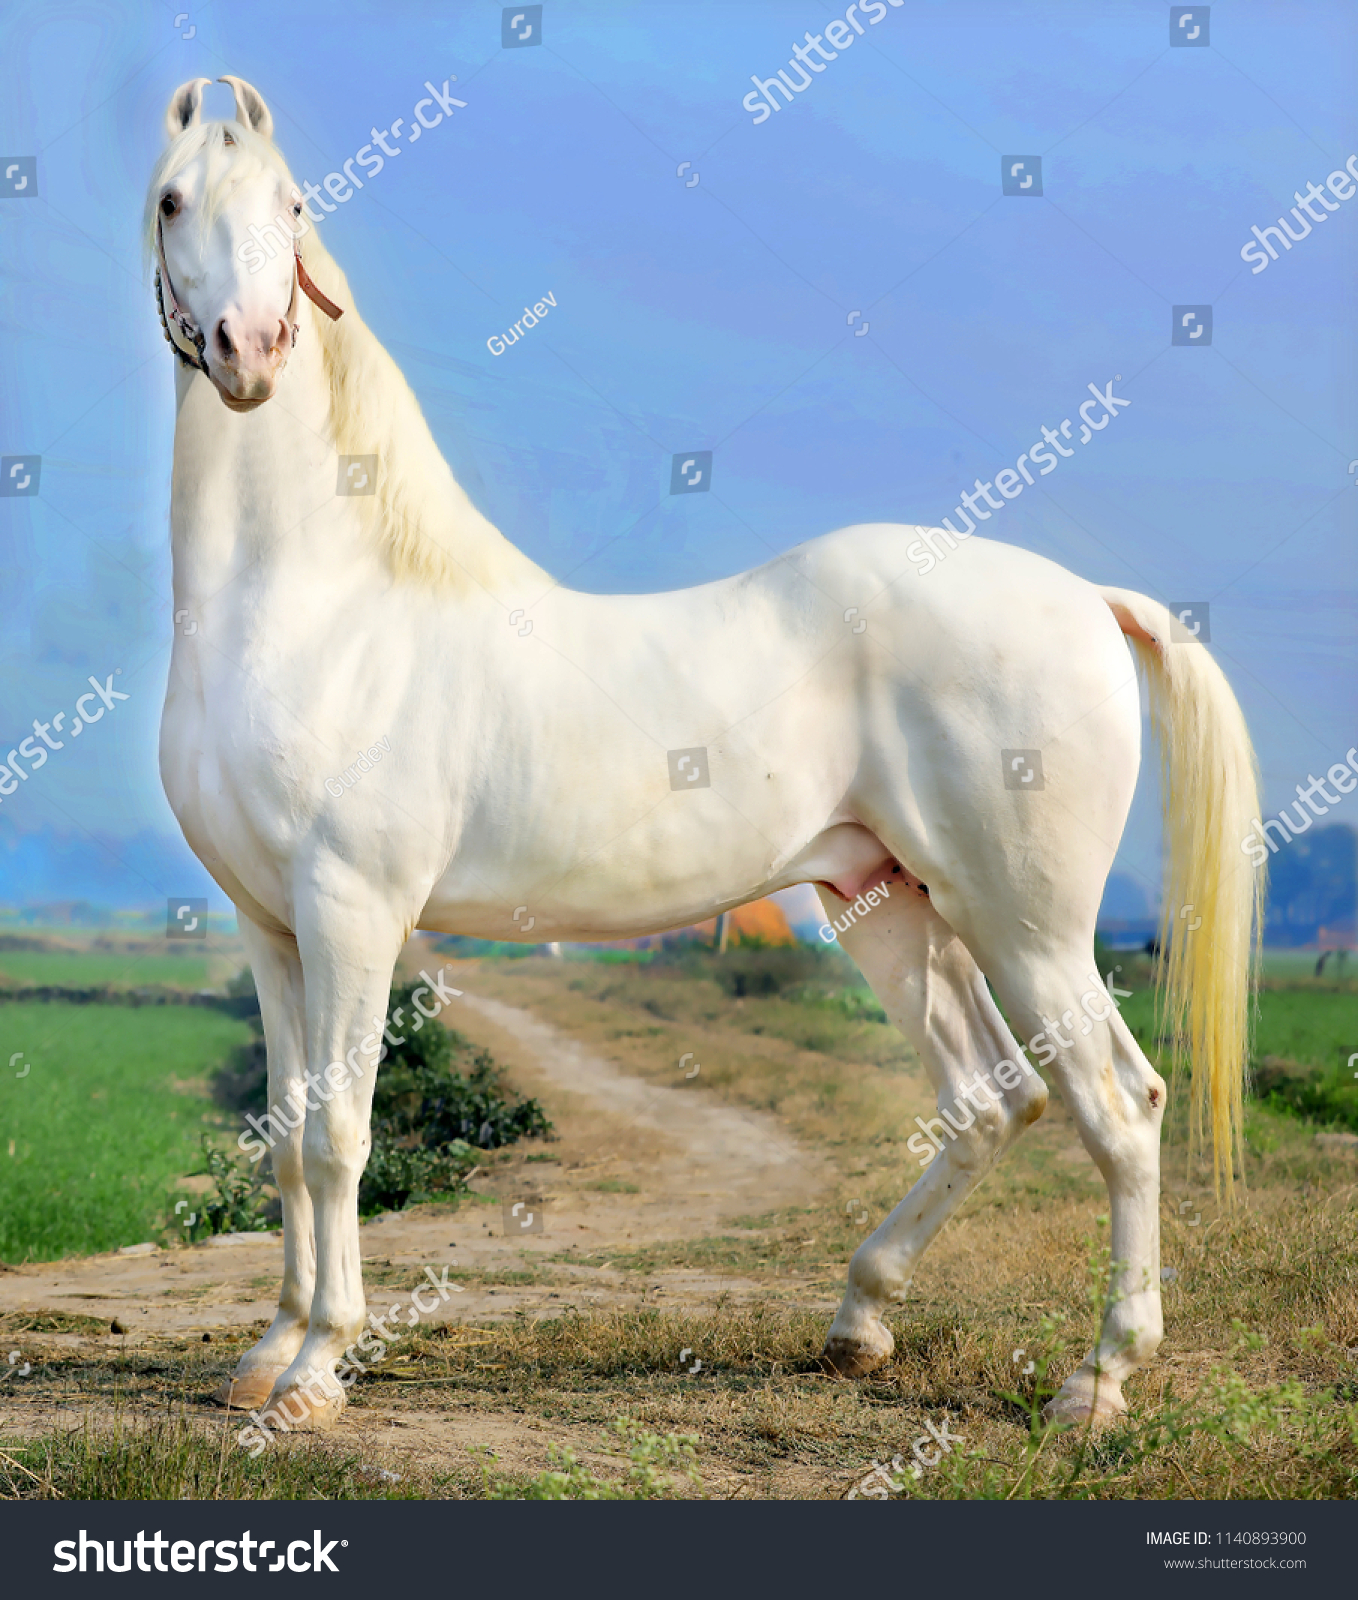 Beautiful White Horse Indian Breed Horse Stock Photo Edit Now 1140893900